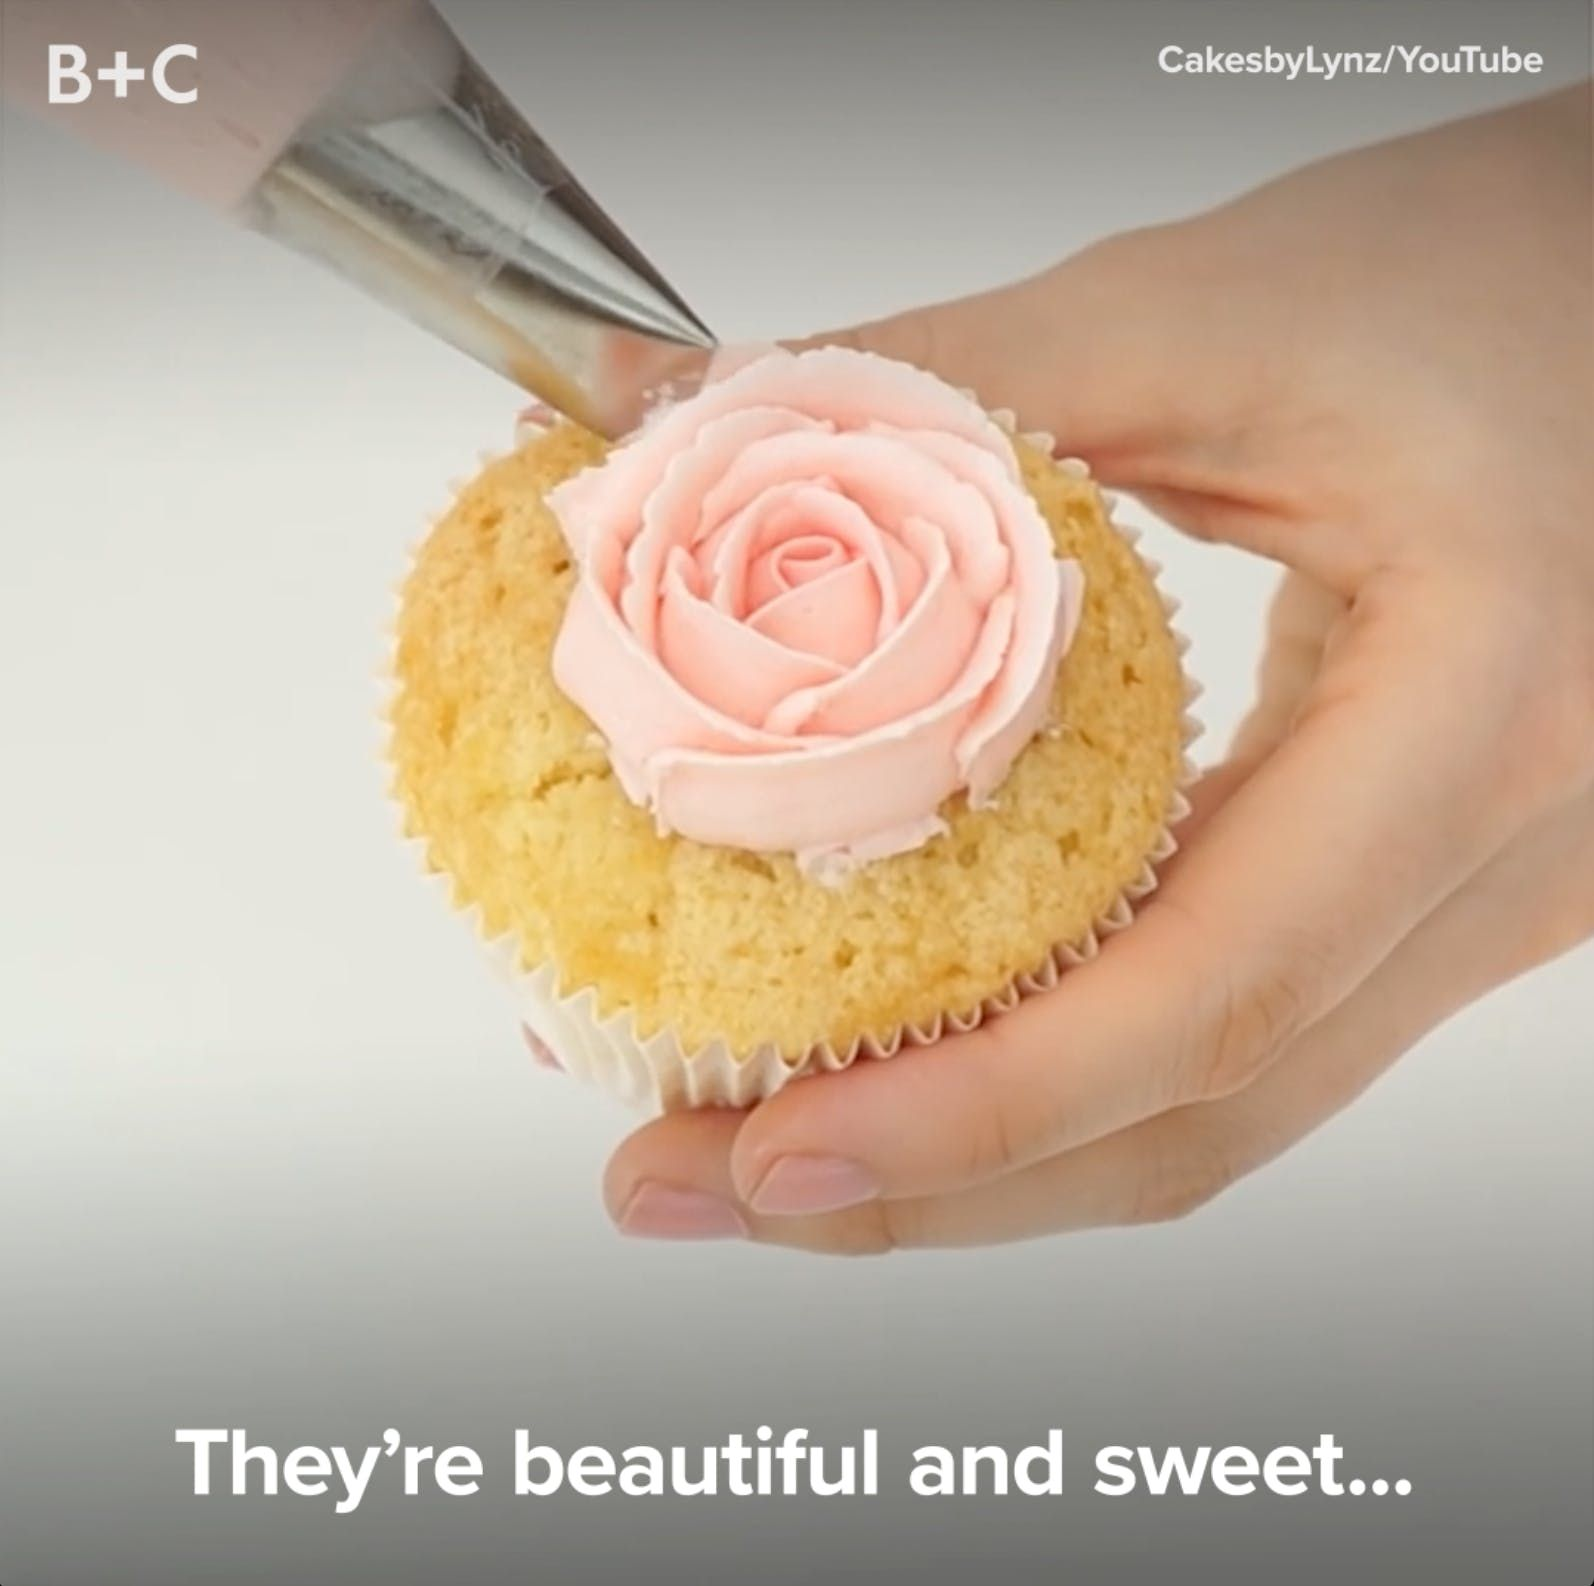 Frosting Flowers Are WAY Better Than the Real Deal #onlineclasses